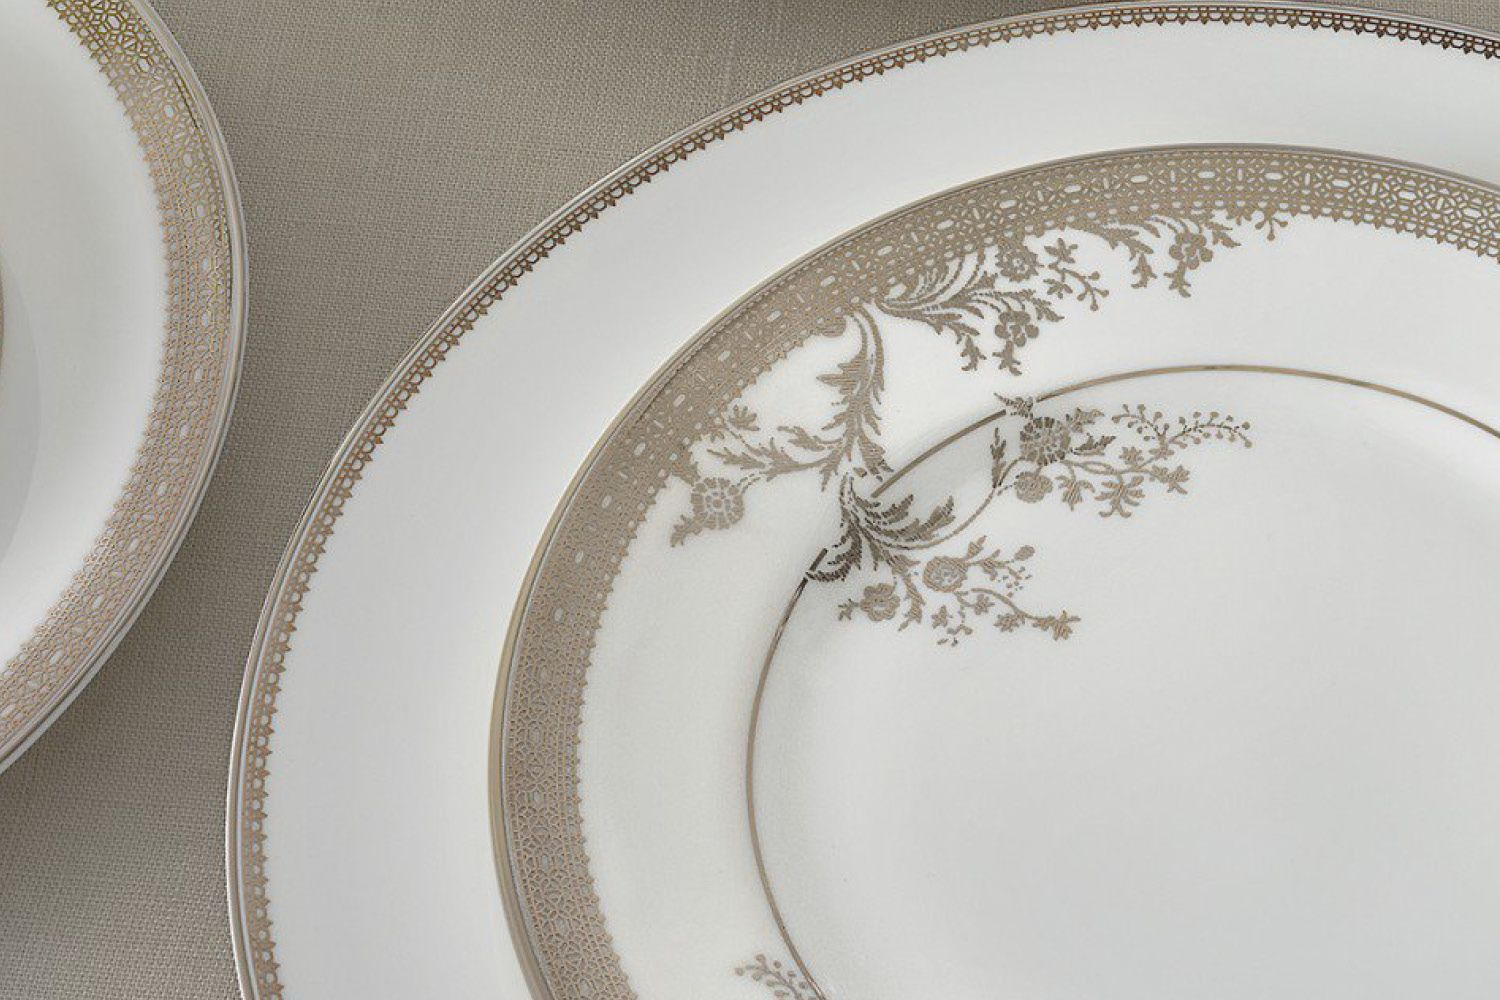 Vera Wang for Wedgwood Lace Gold Dinner Plate 27cm thumb 2